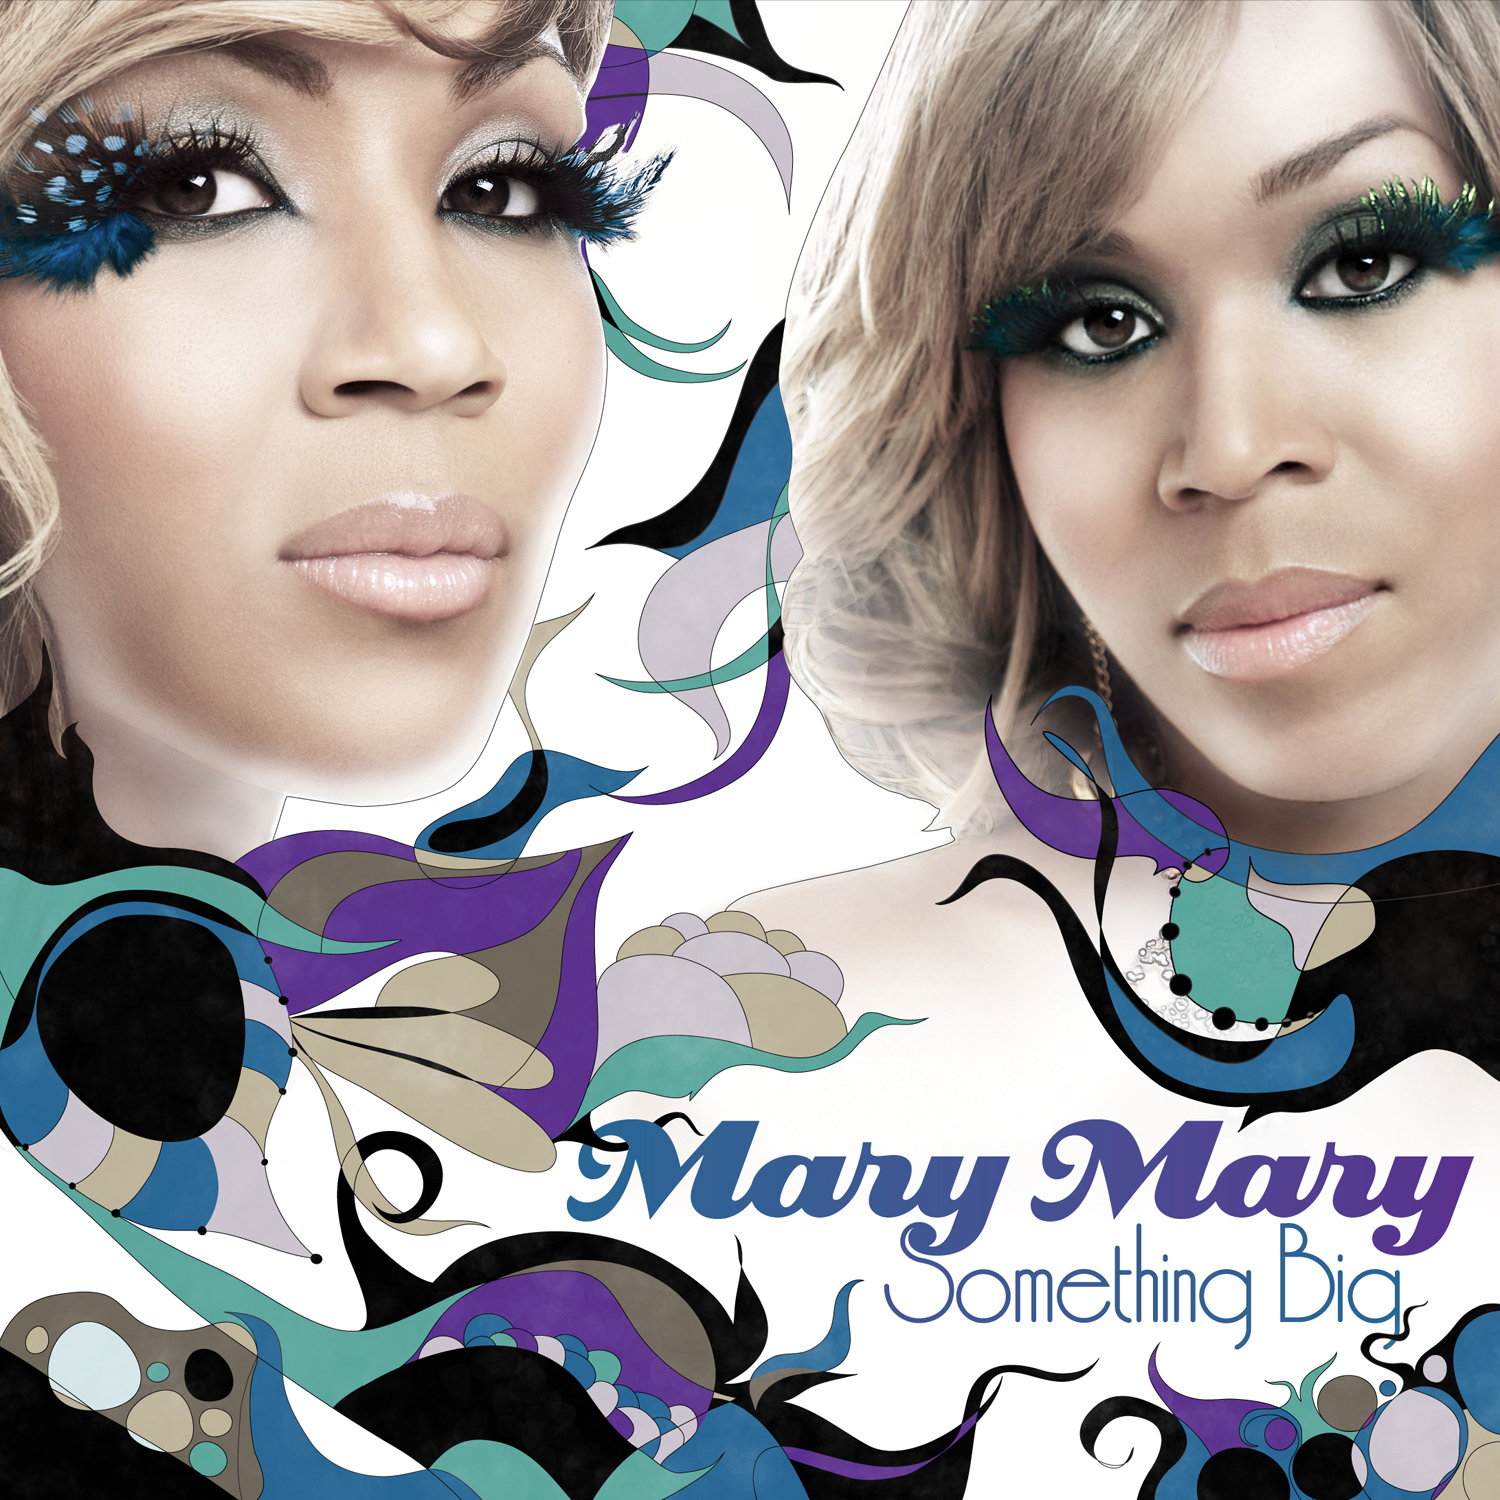 mary-mary-something-big